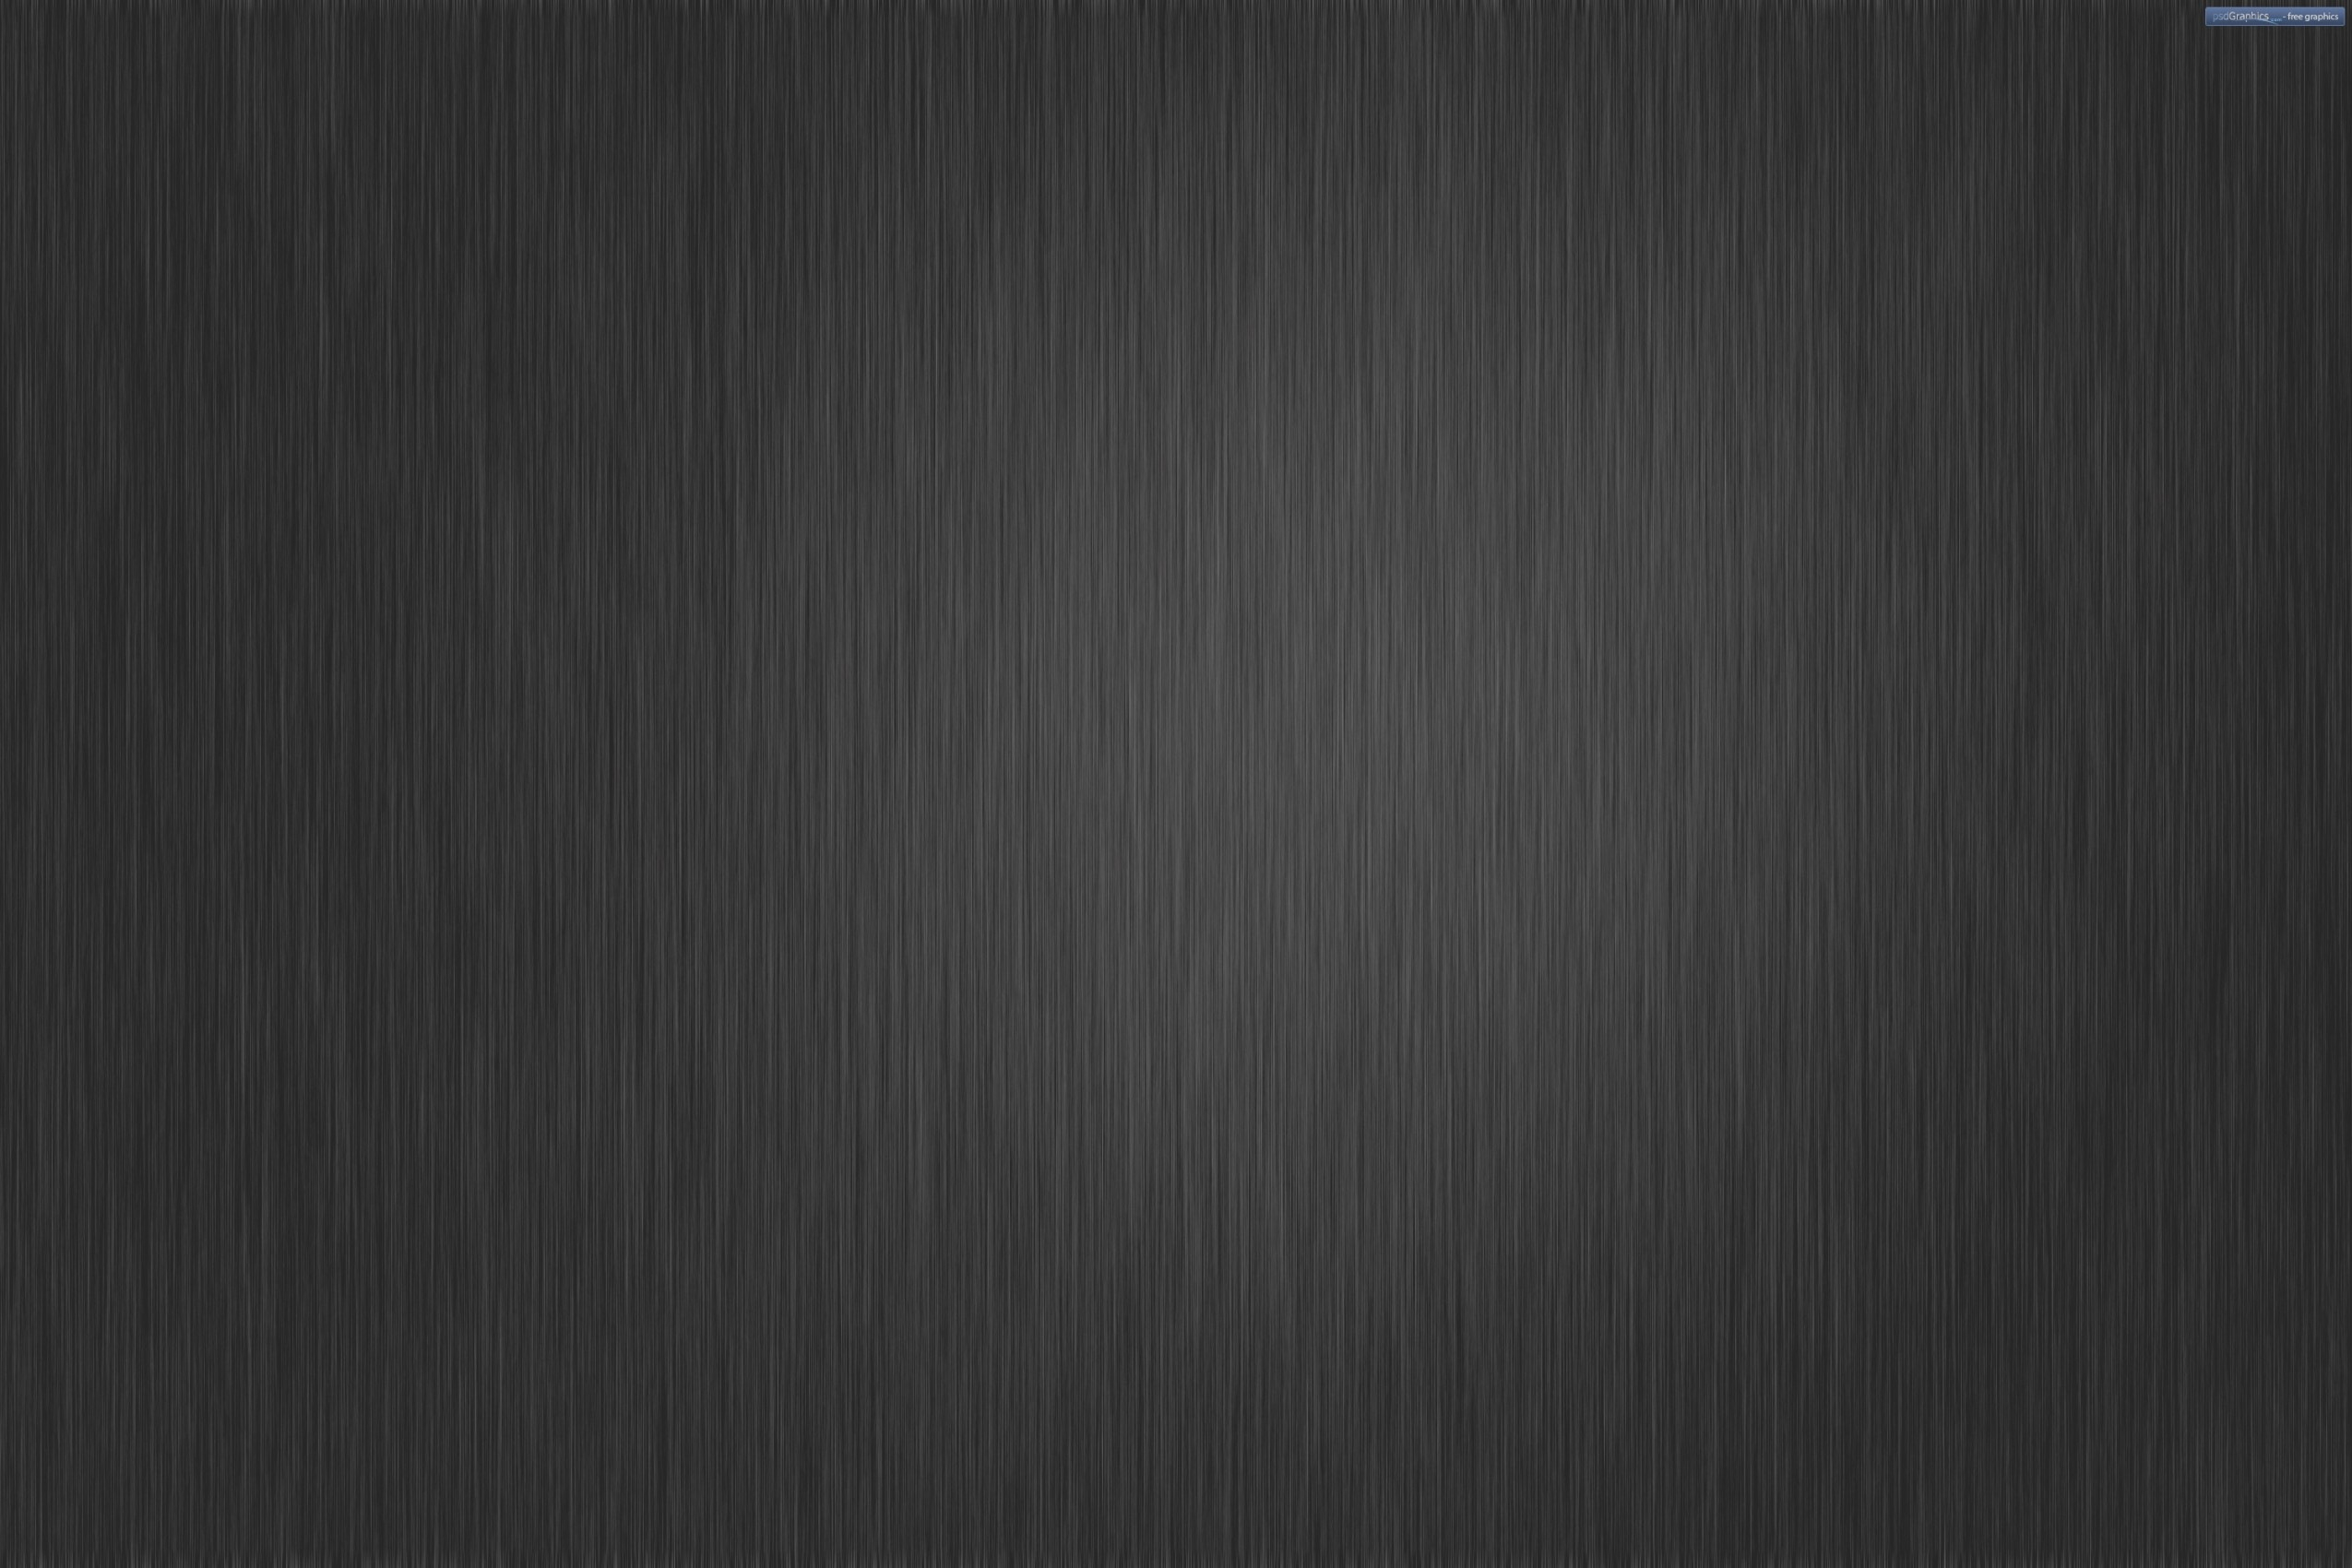 … plain black and white tumblr backgrounds | Wallpapers HD (High  Difinition) …